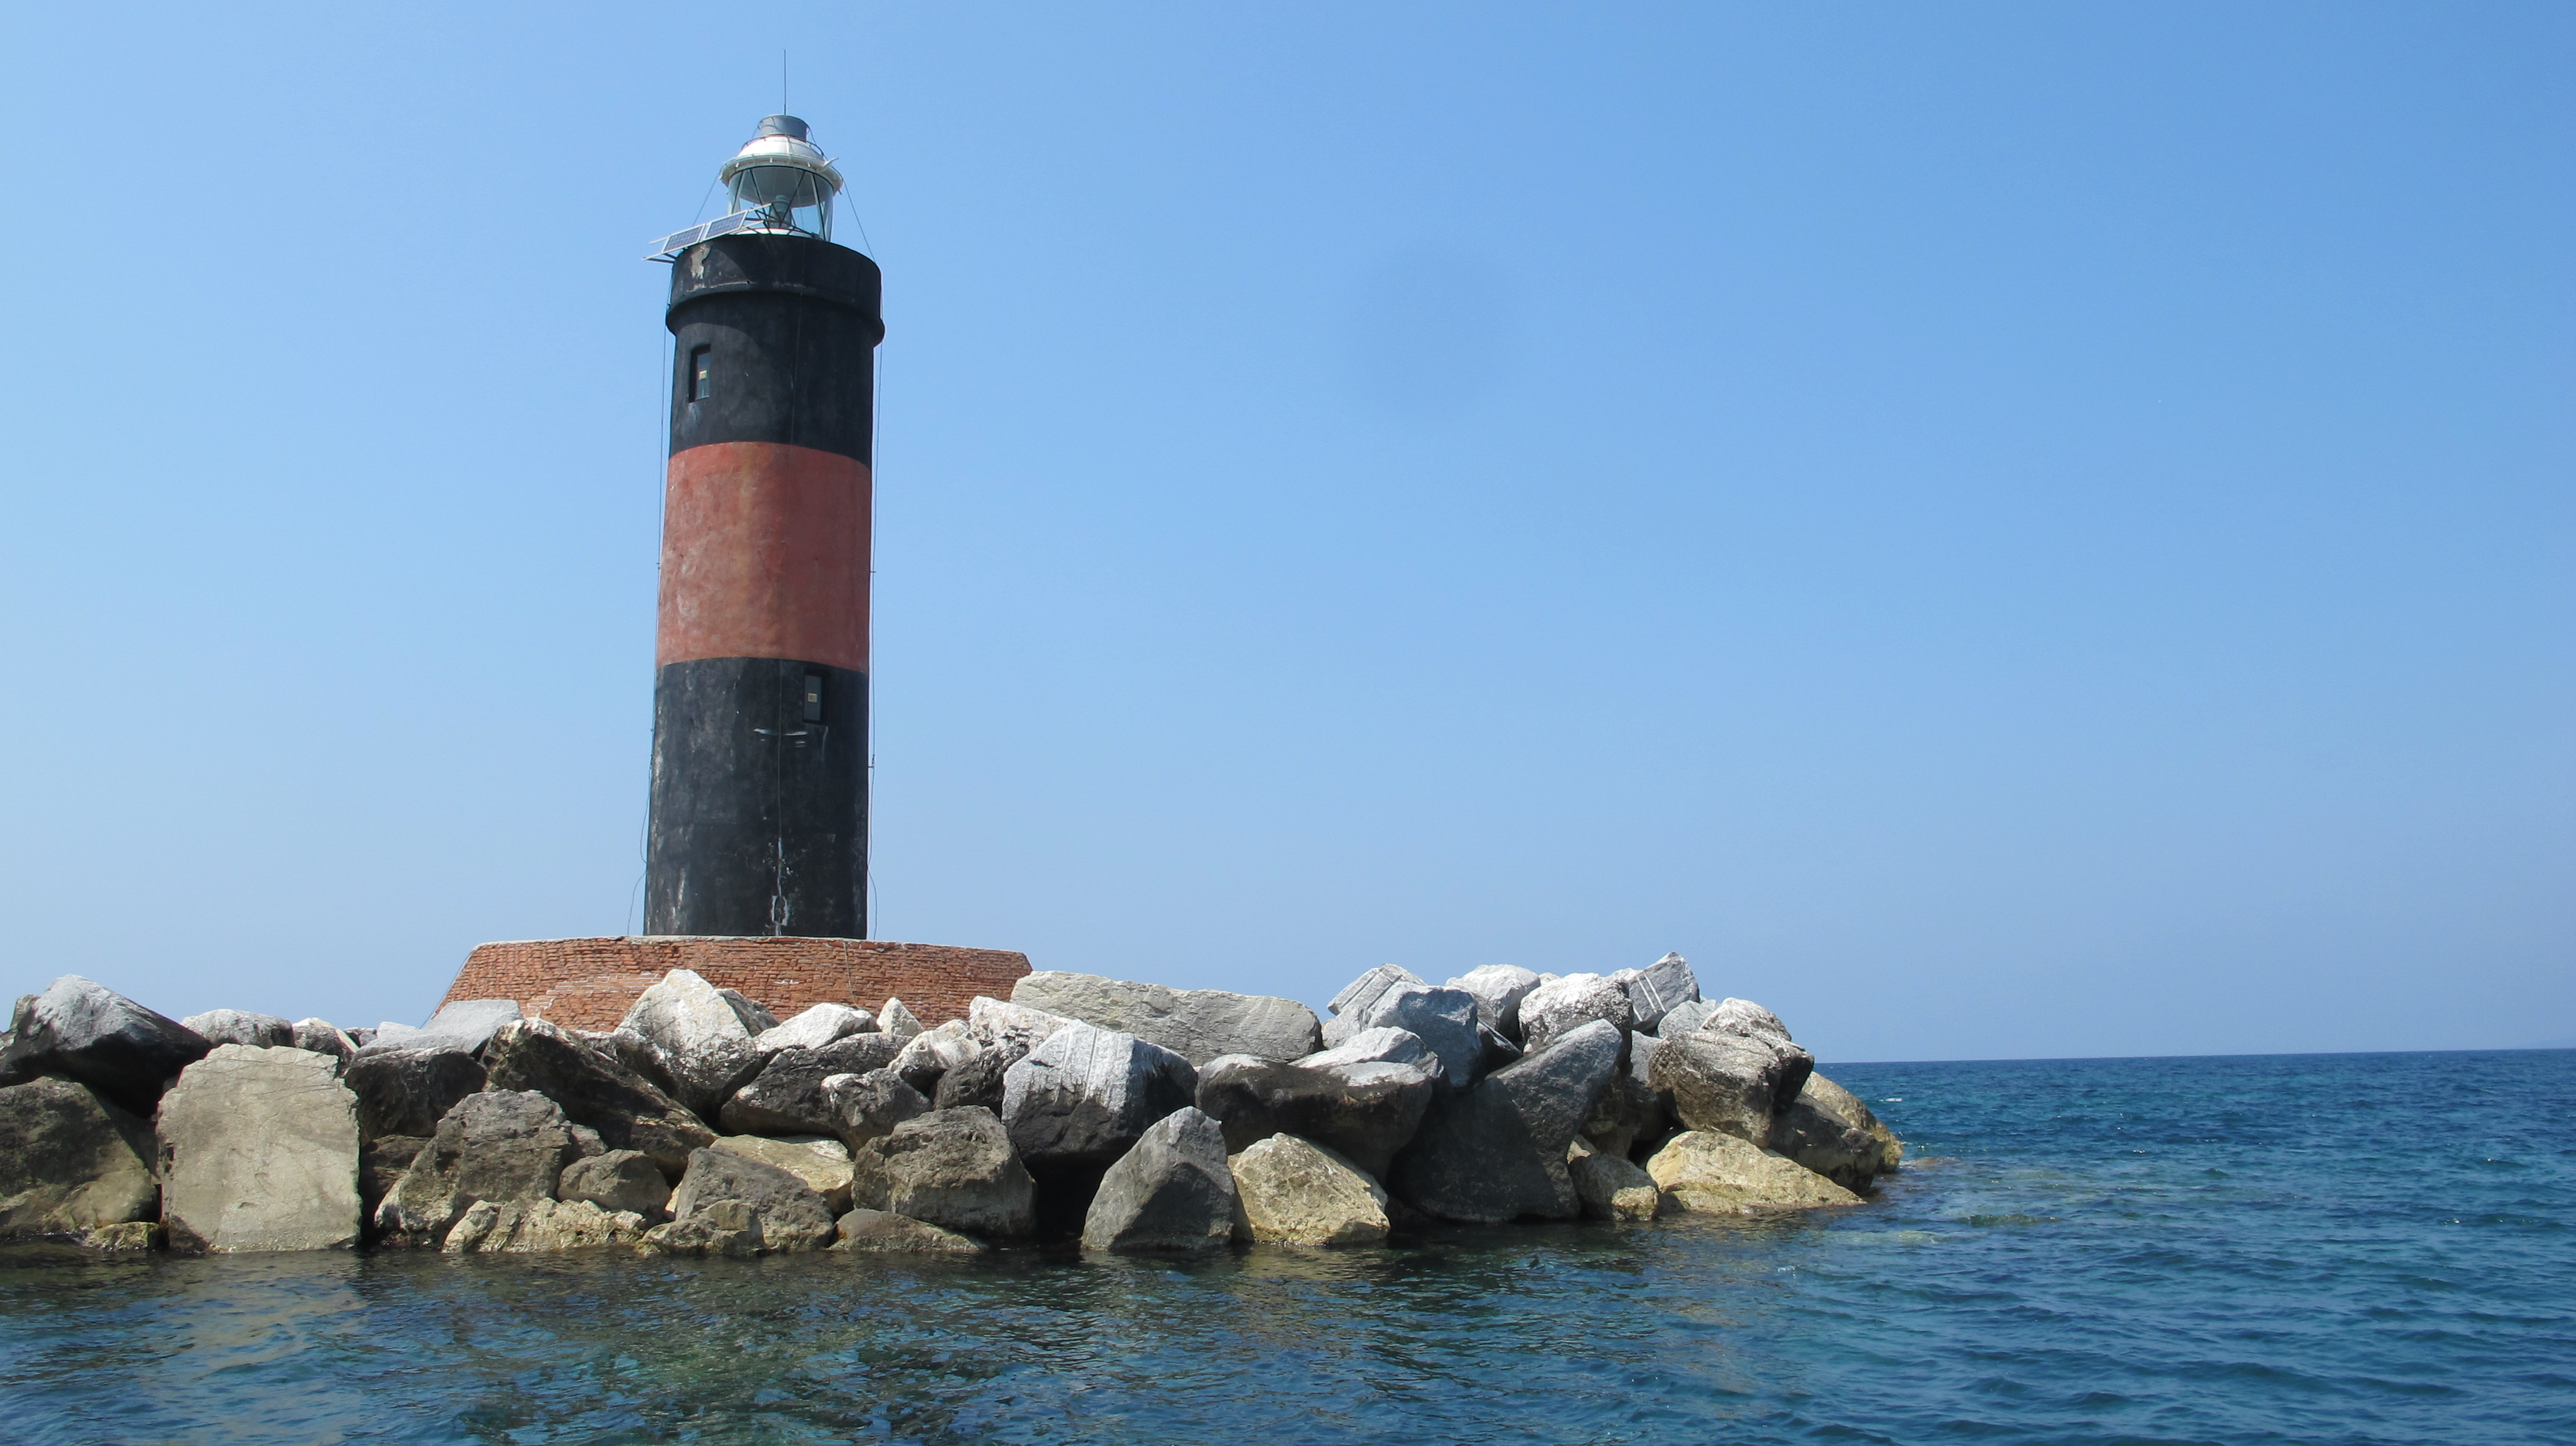 A little ways off the beach is a lighthouse that Léon, Leonardo, and I visited by boat one day.